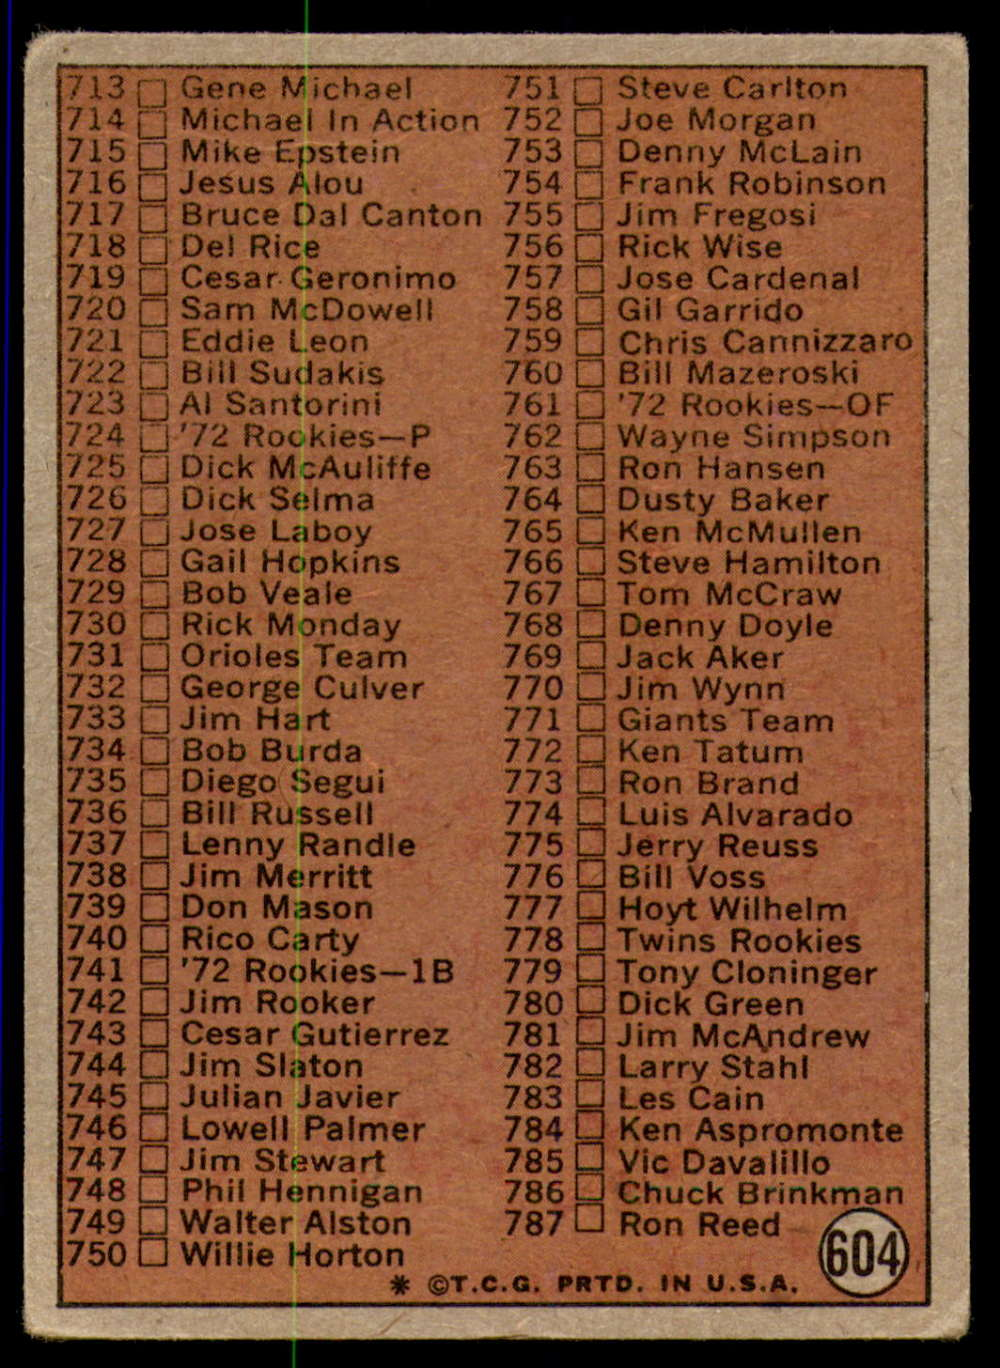 1972-Topps-Baseball-Set-497-787-Pick-Your-Card-Each-Card-Scanned-Front-amp-Back thumbnail 183